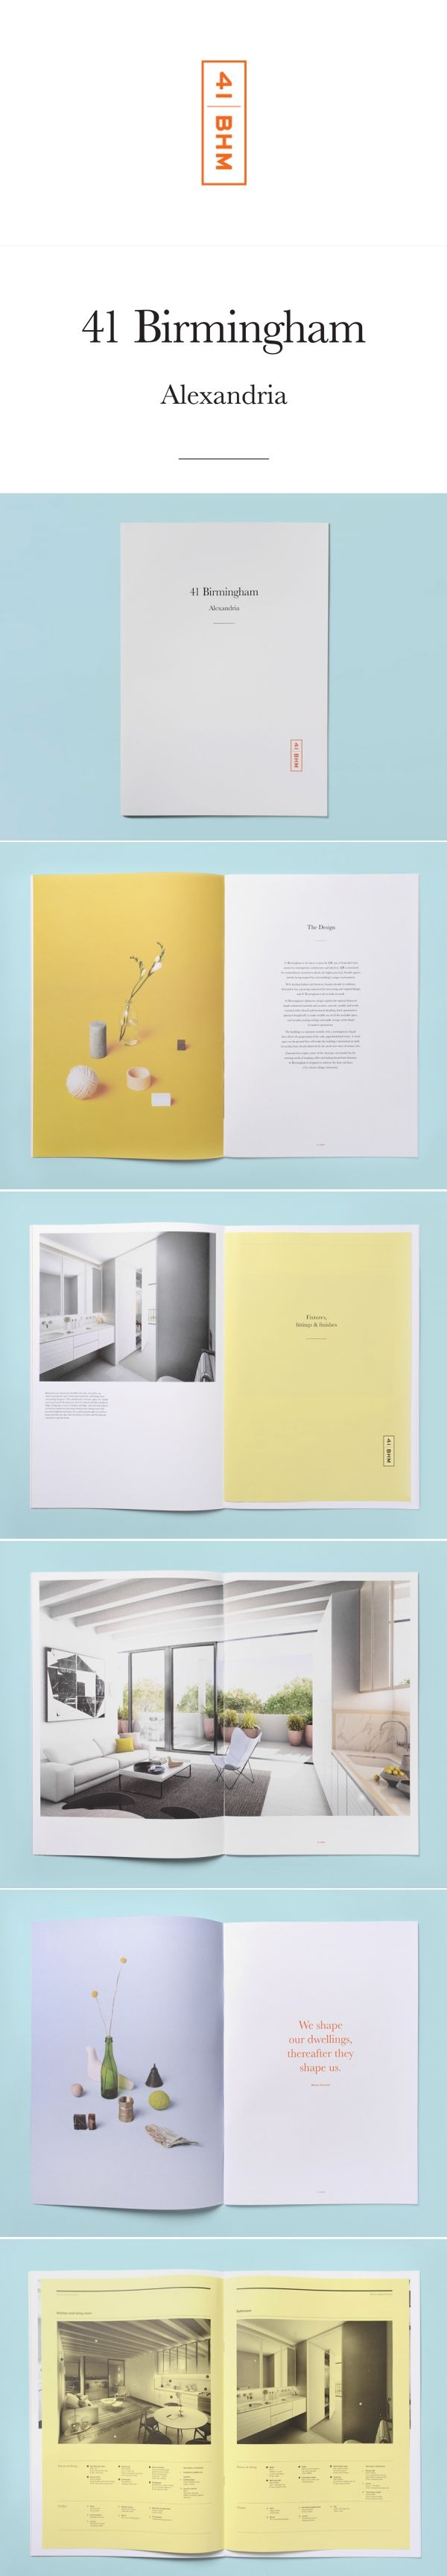 This feels light and airy, much like the apartment looks. - 41 Birmingham…